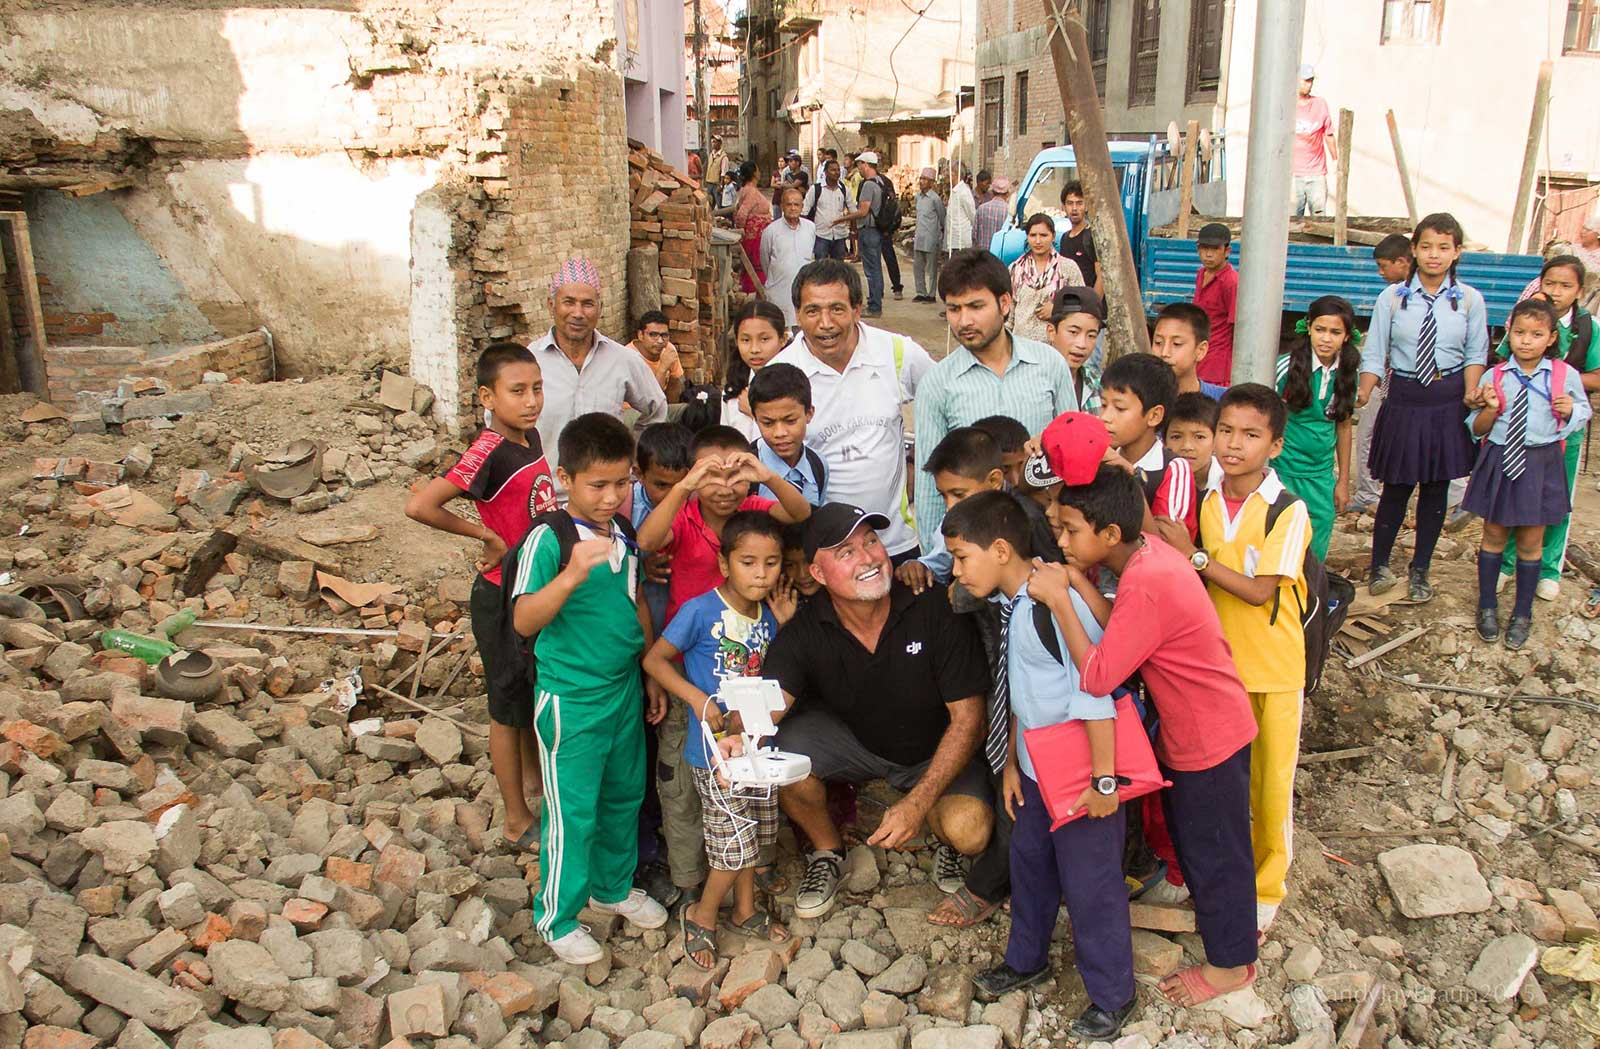 Aerial photographer showing Nepalise children the Pix4Dcapture drone flight app